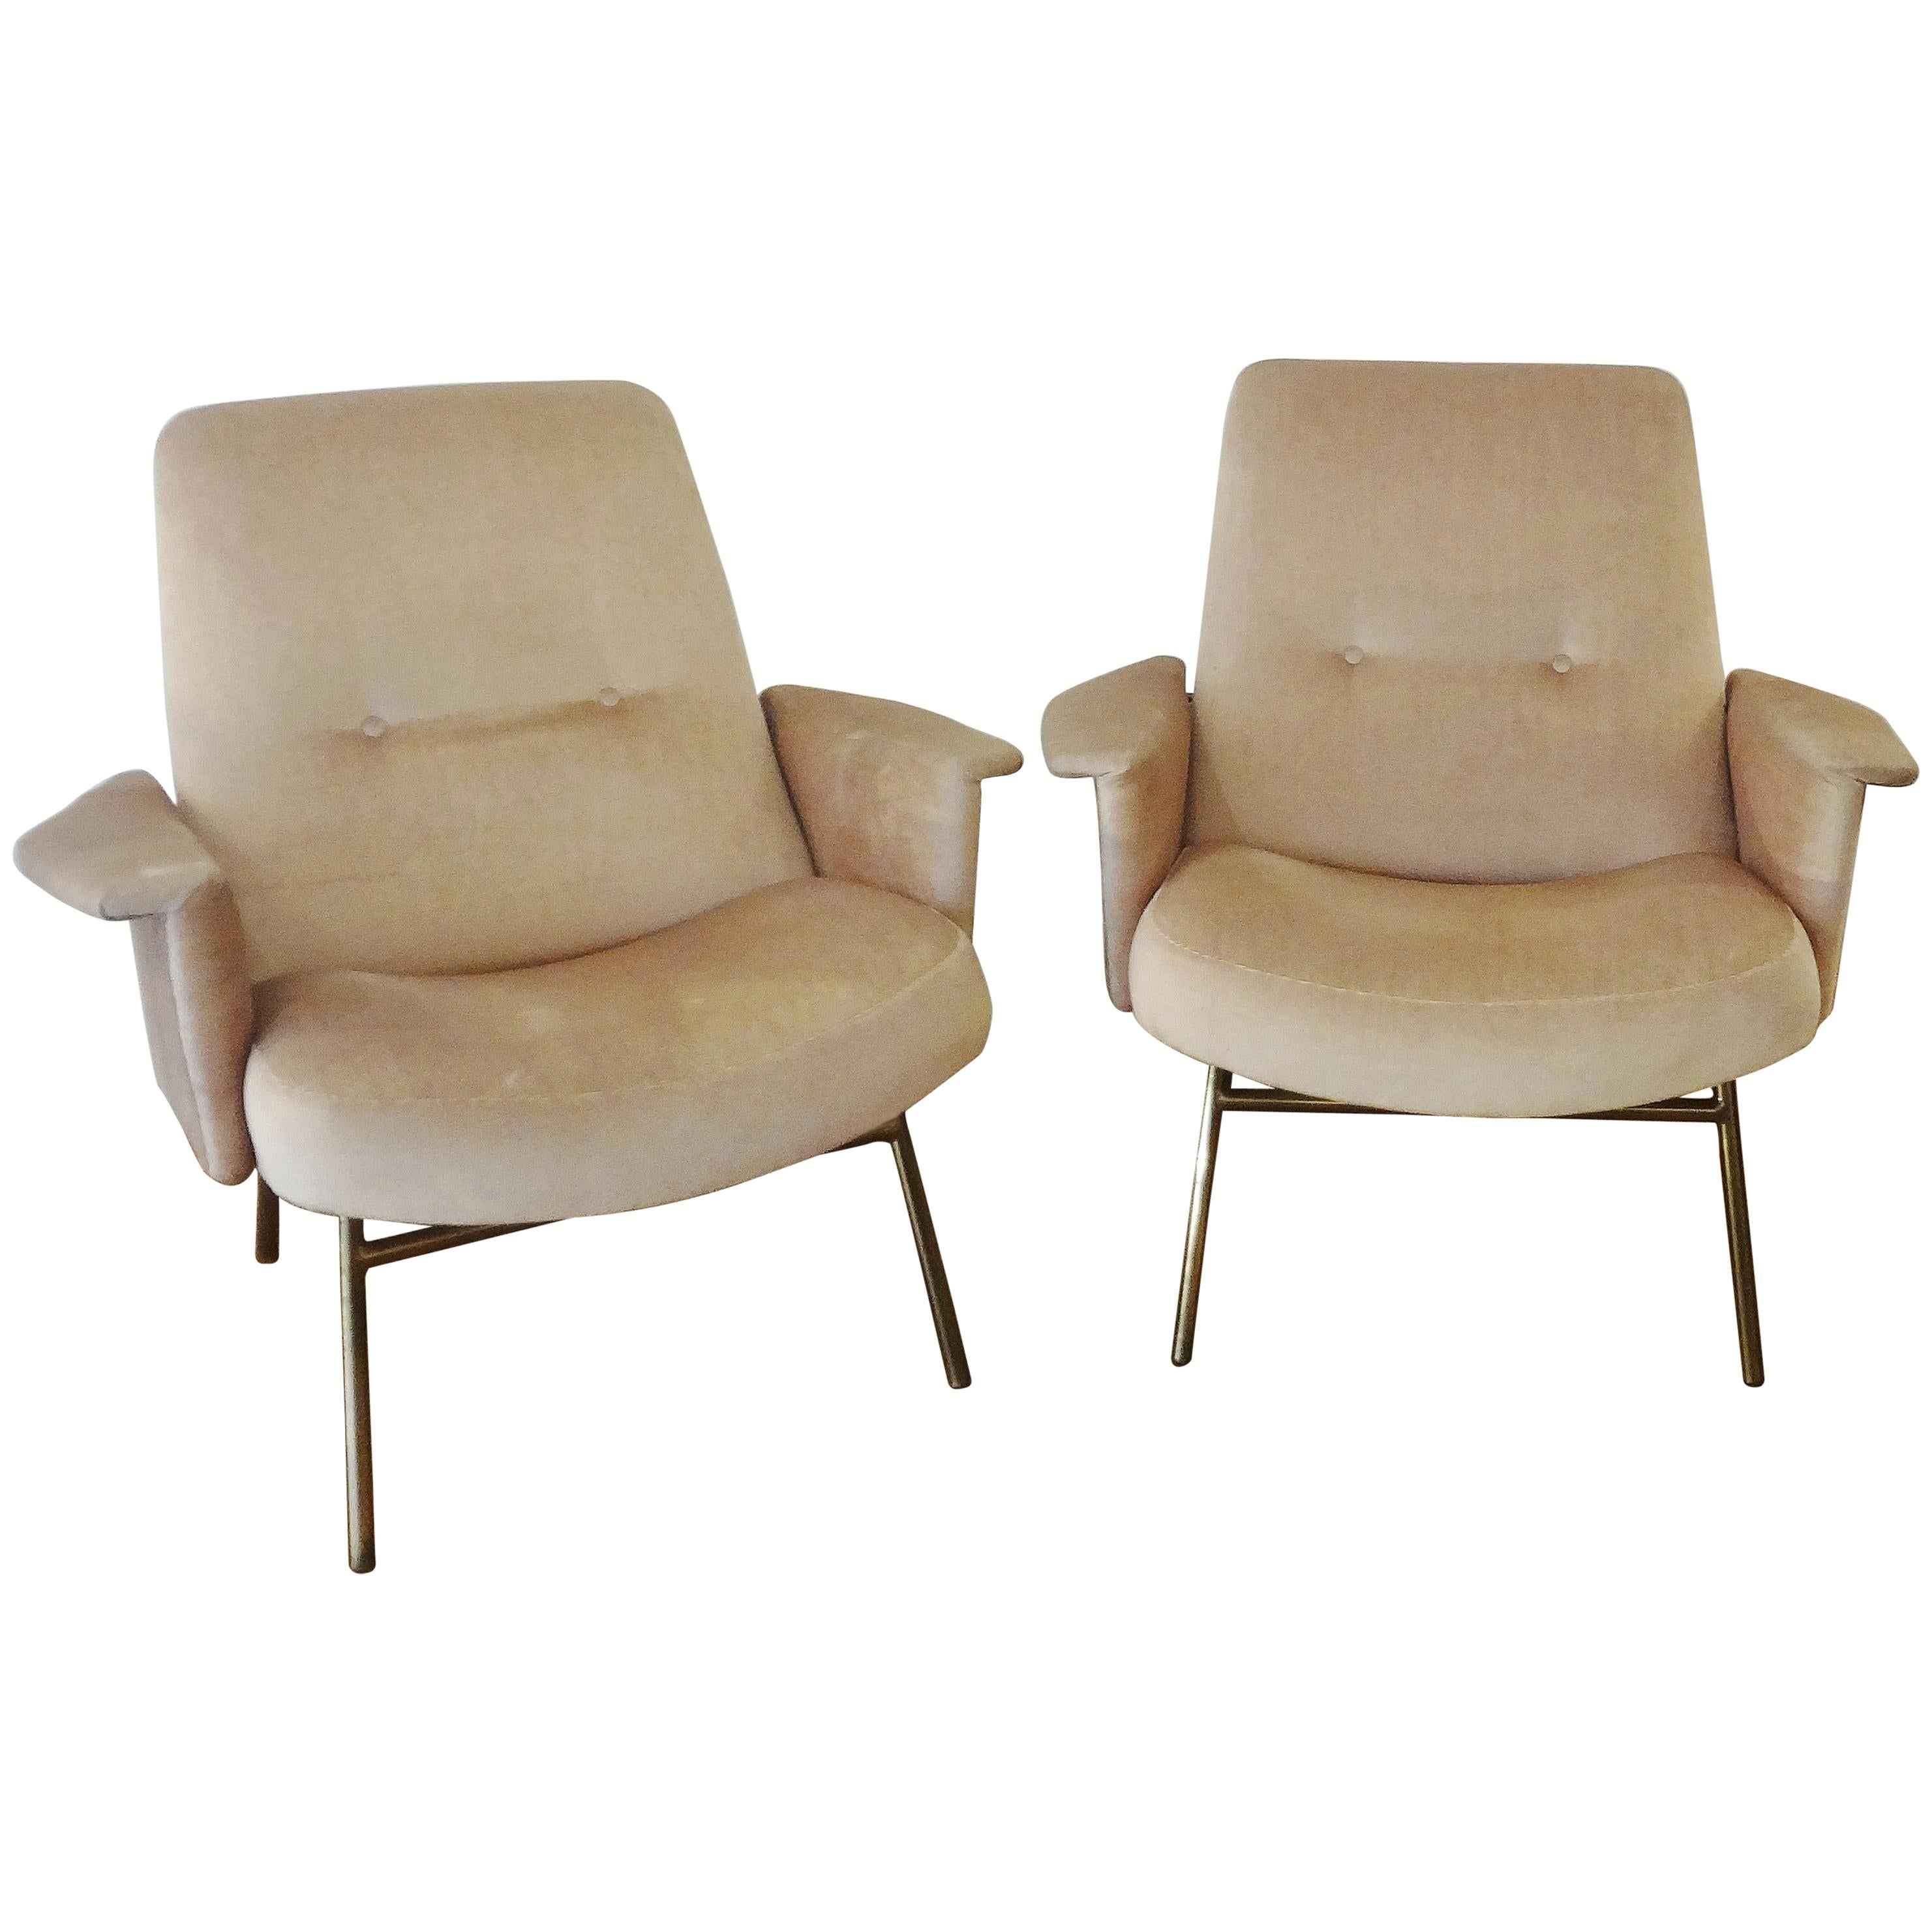 Antique and Vintage Chairs, Sofas and Seating - 71,671 For Sale at 1stdibs